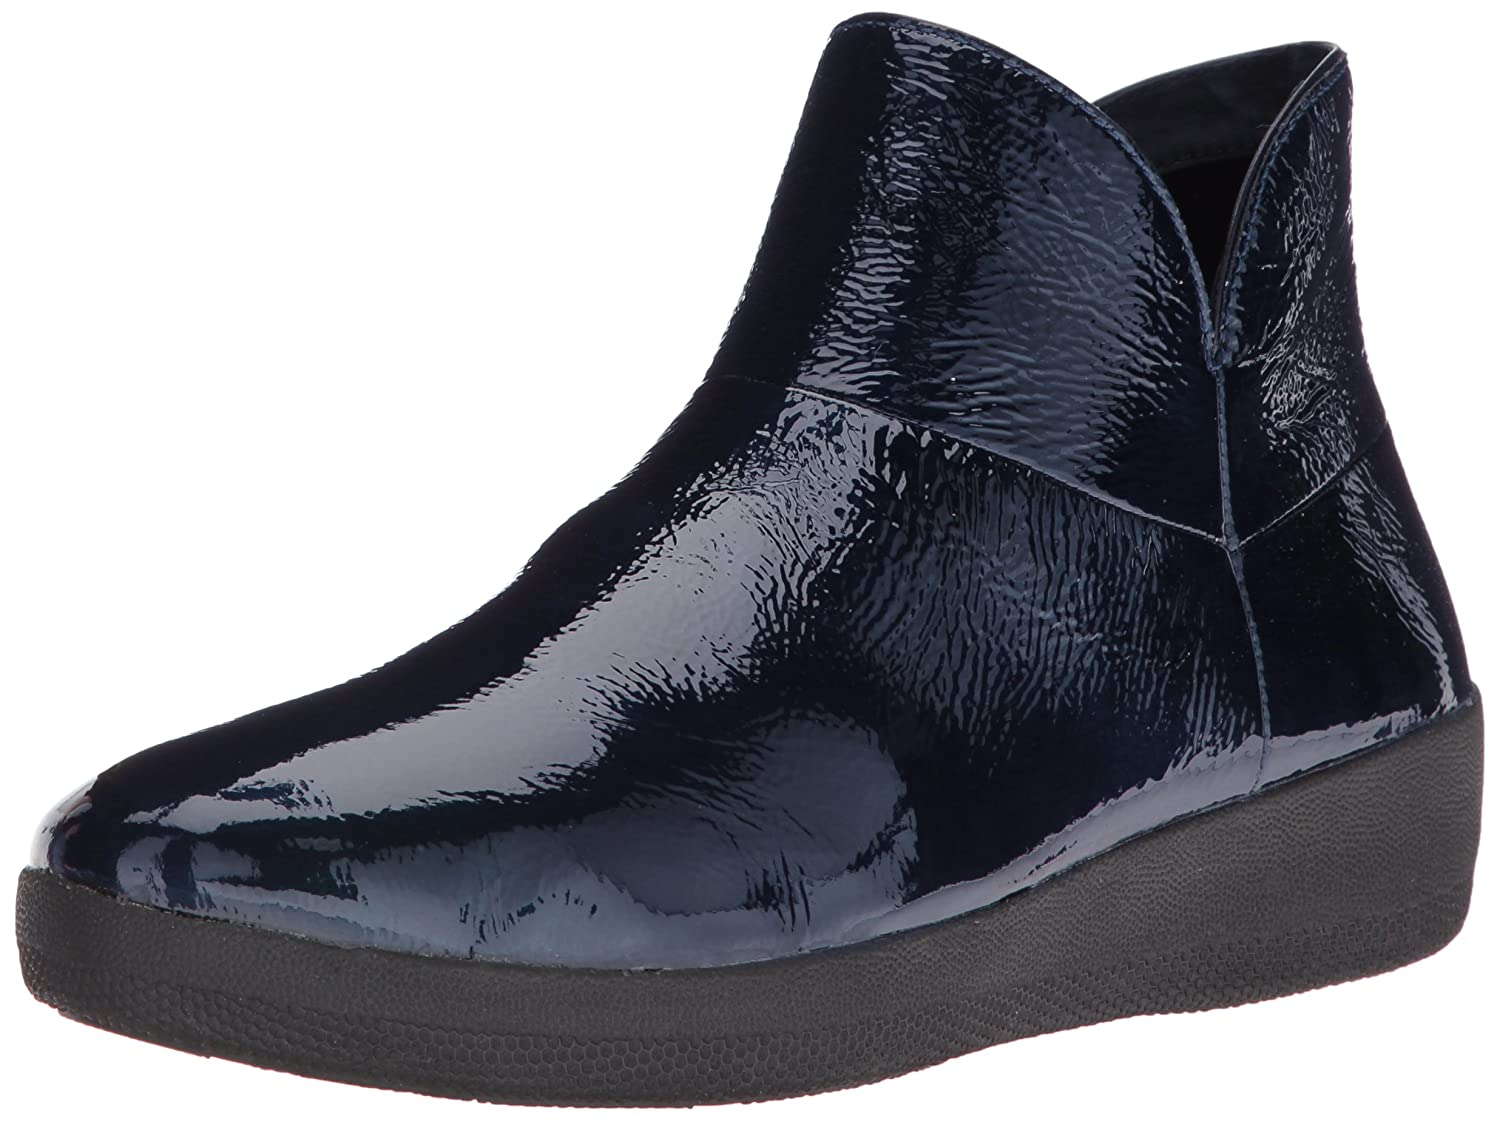 FitFlop Women's Supermod Boot Ankle Bootie B01IC22SUC 7.5 B(M) US|Inky Blue